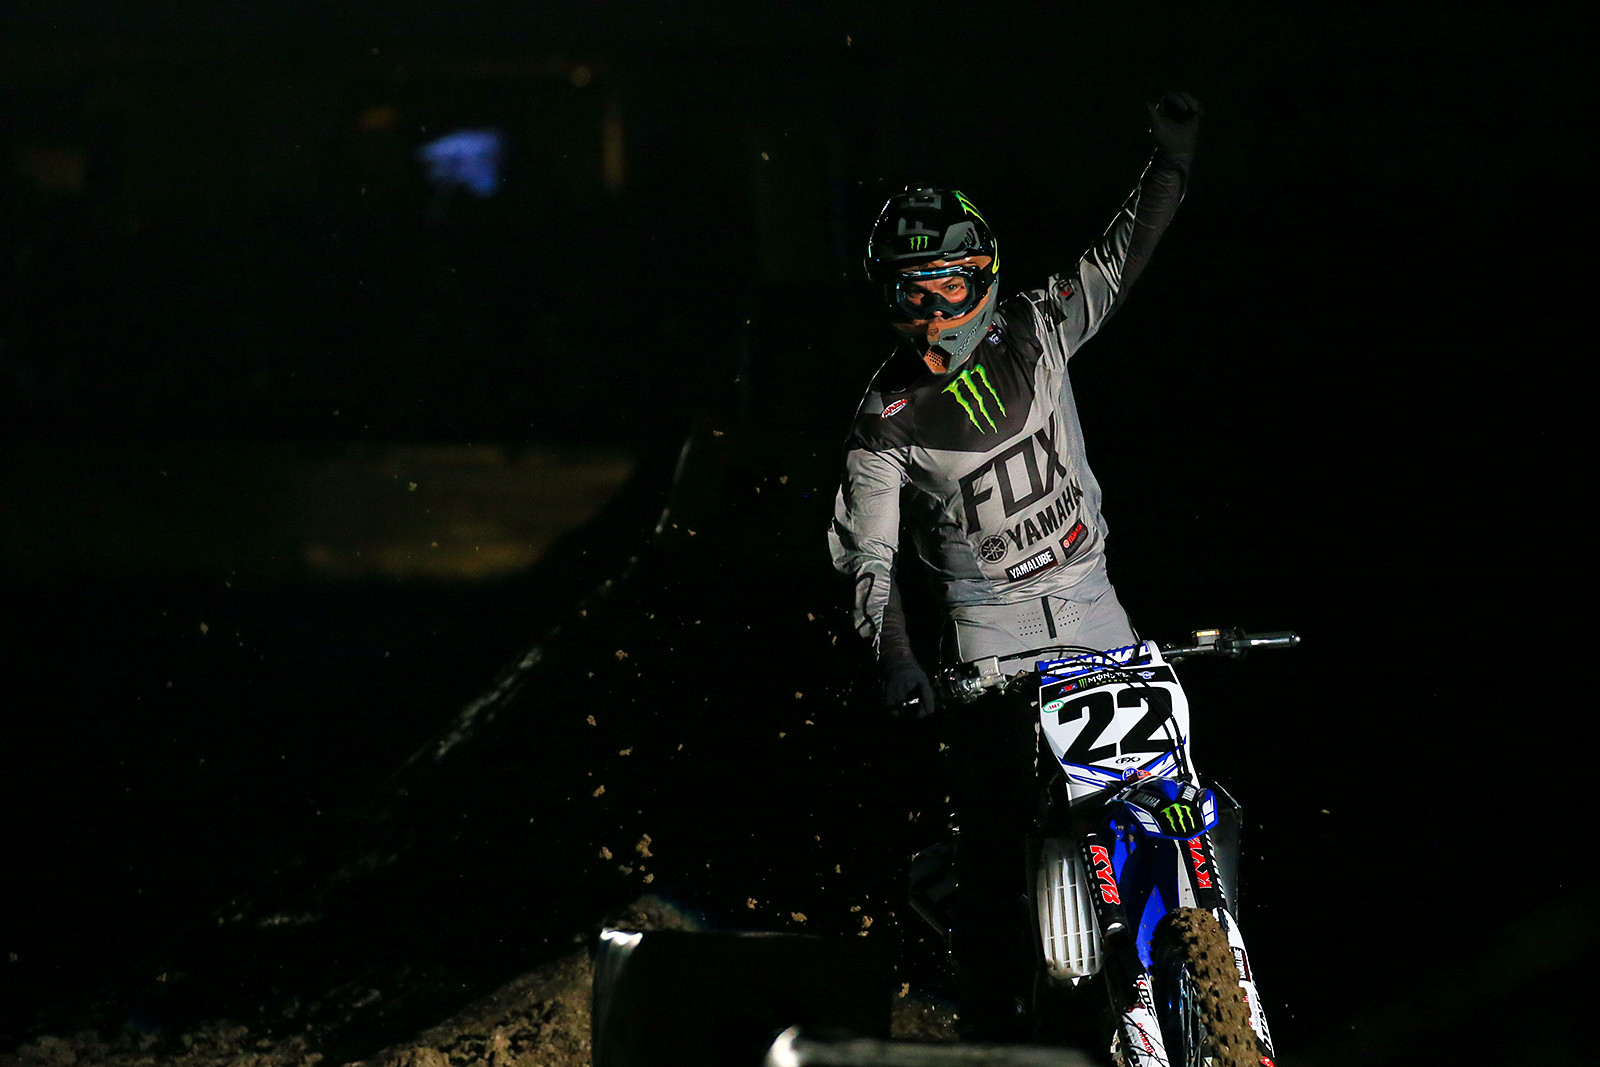 Photo Blast: Chad Reed during rider introductions at Anaheim 2 - Photo Blast: Anaheim 2 - Motocross Pictures - Vital MX